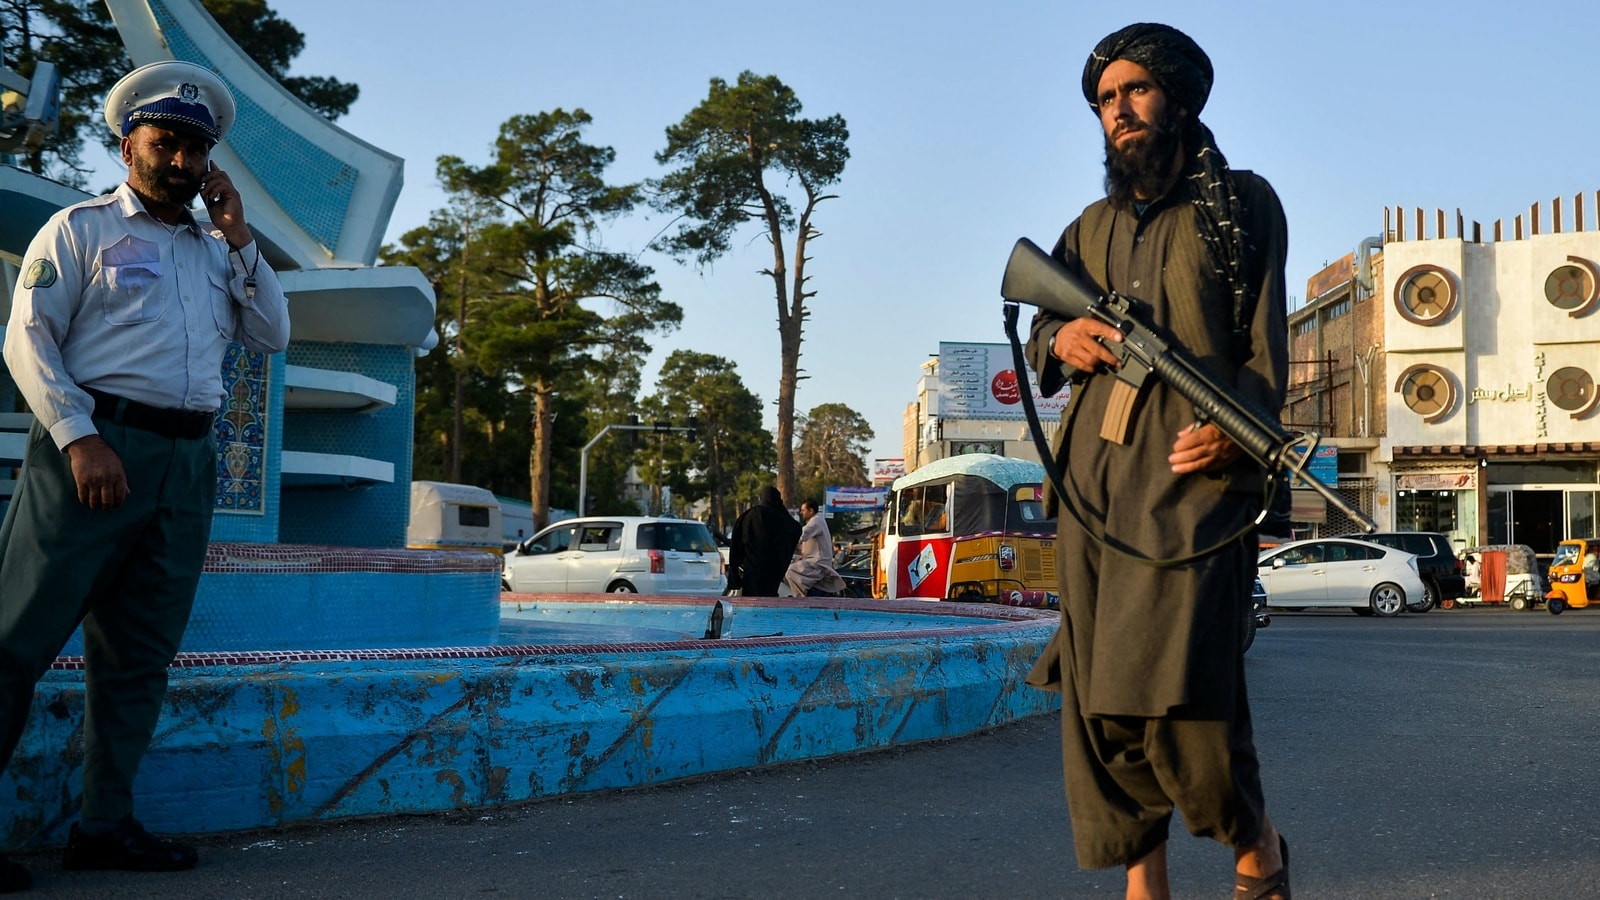 IMF to not allocate funds to Afghanistan due to political uncertainty: Report